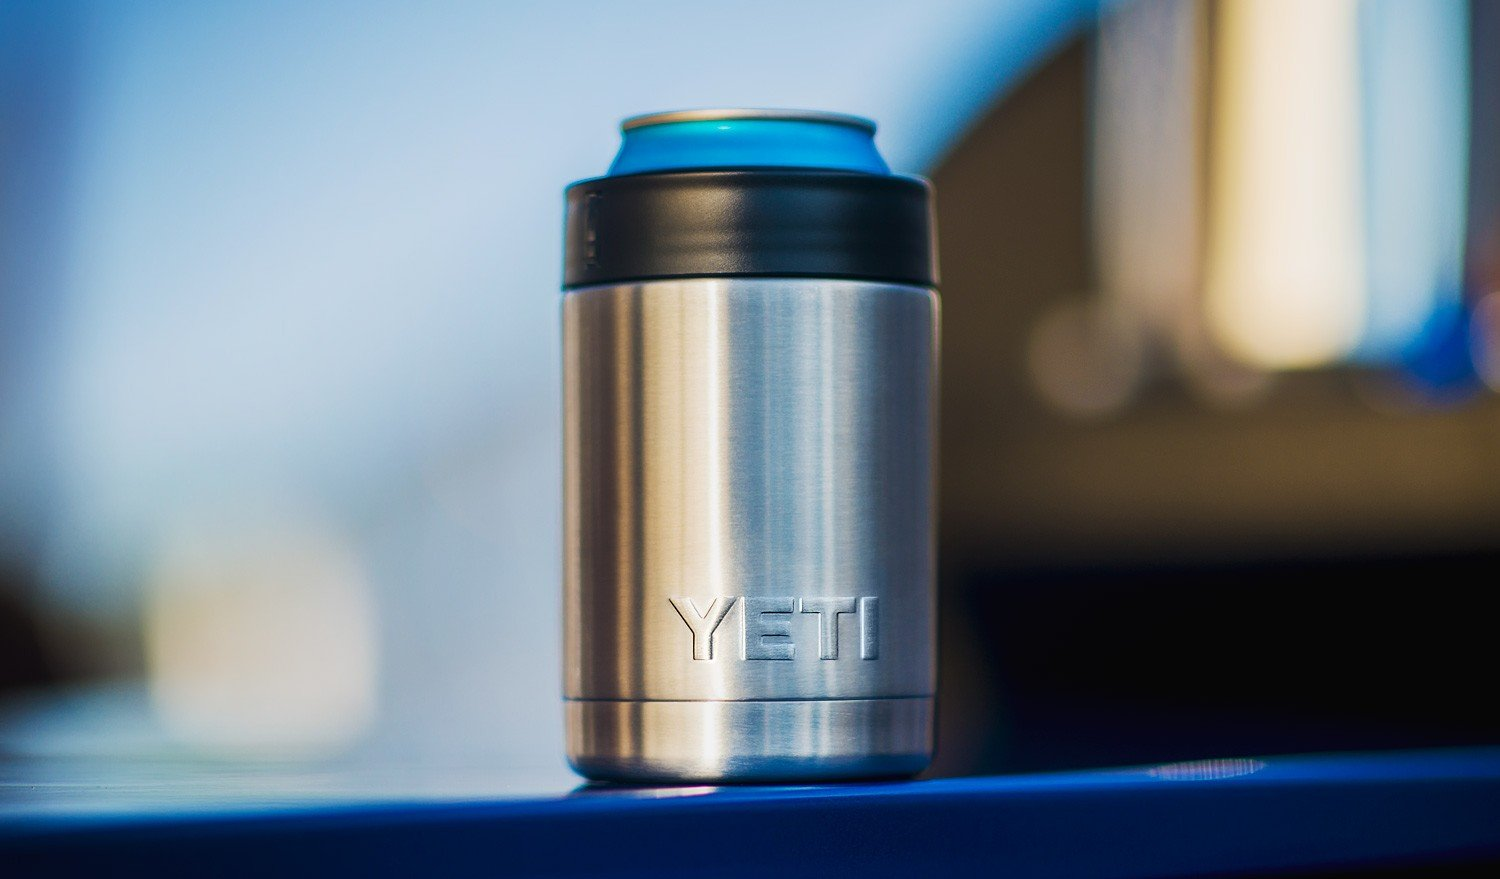 YETI Rambler Colster Can and Bottle Holder Silver One Size by YETI (Image #6)